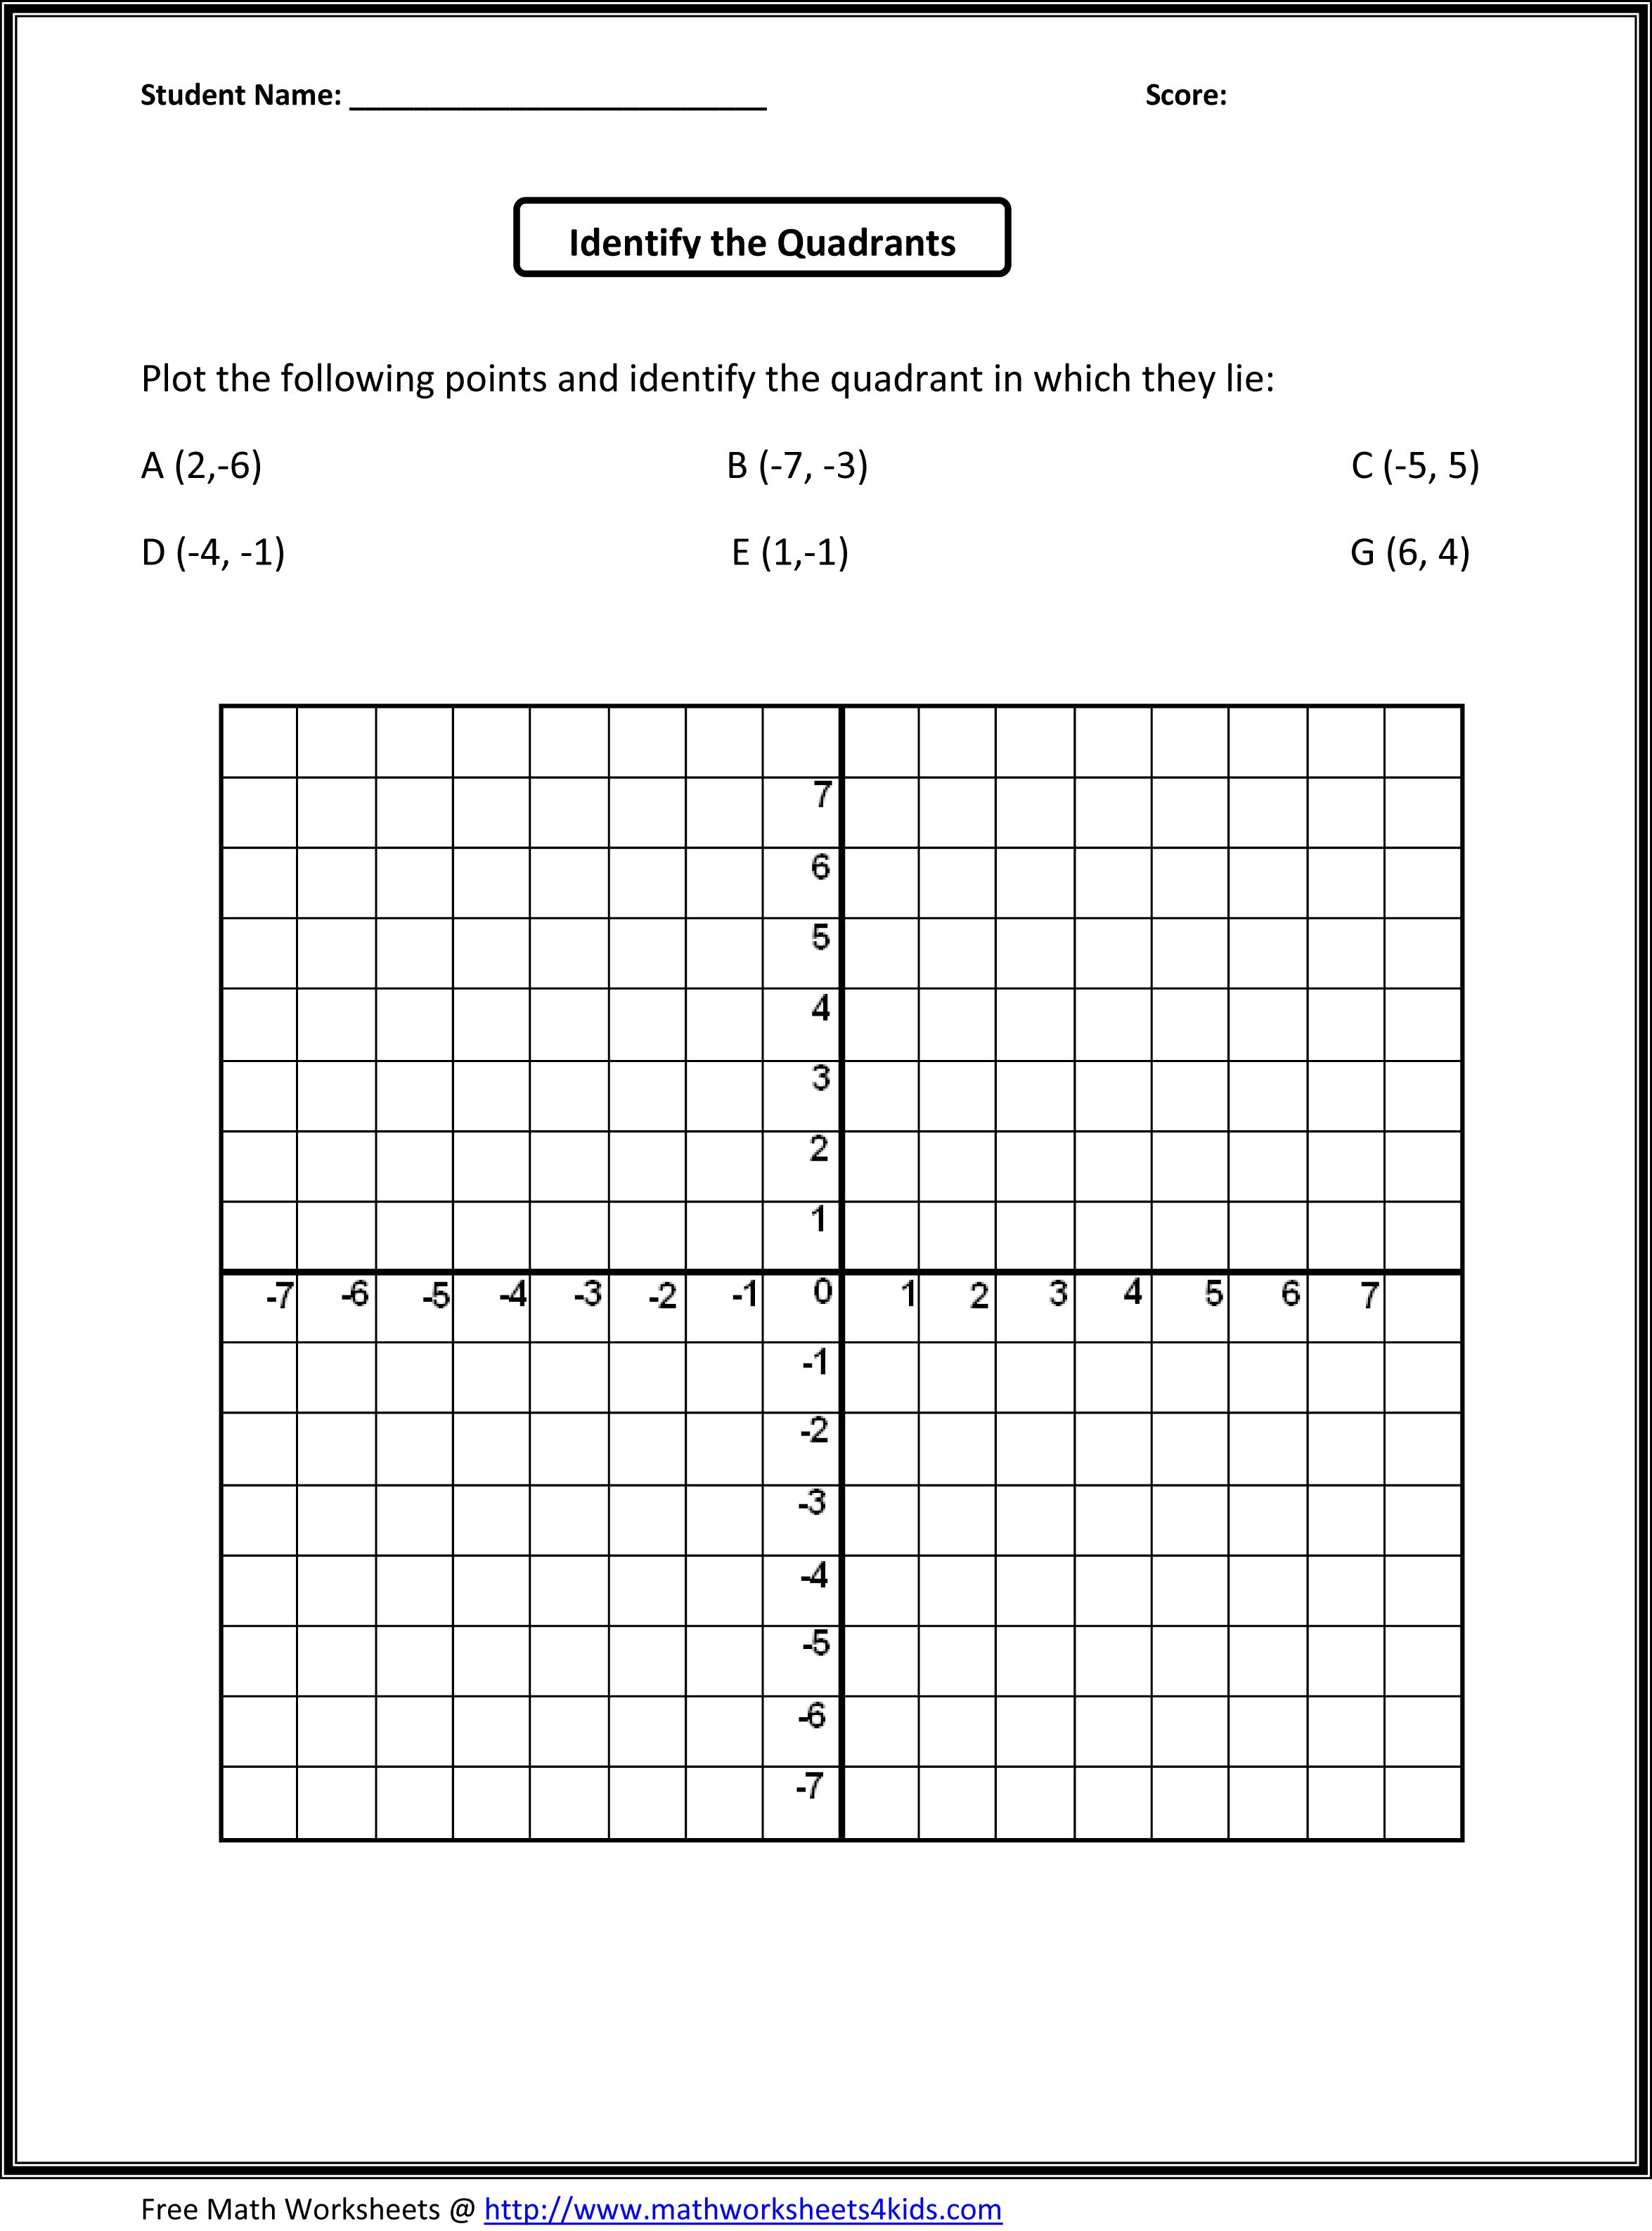 Pin On Educational Work Sheets 4 Kids